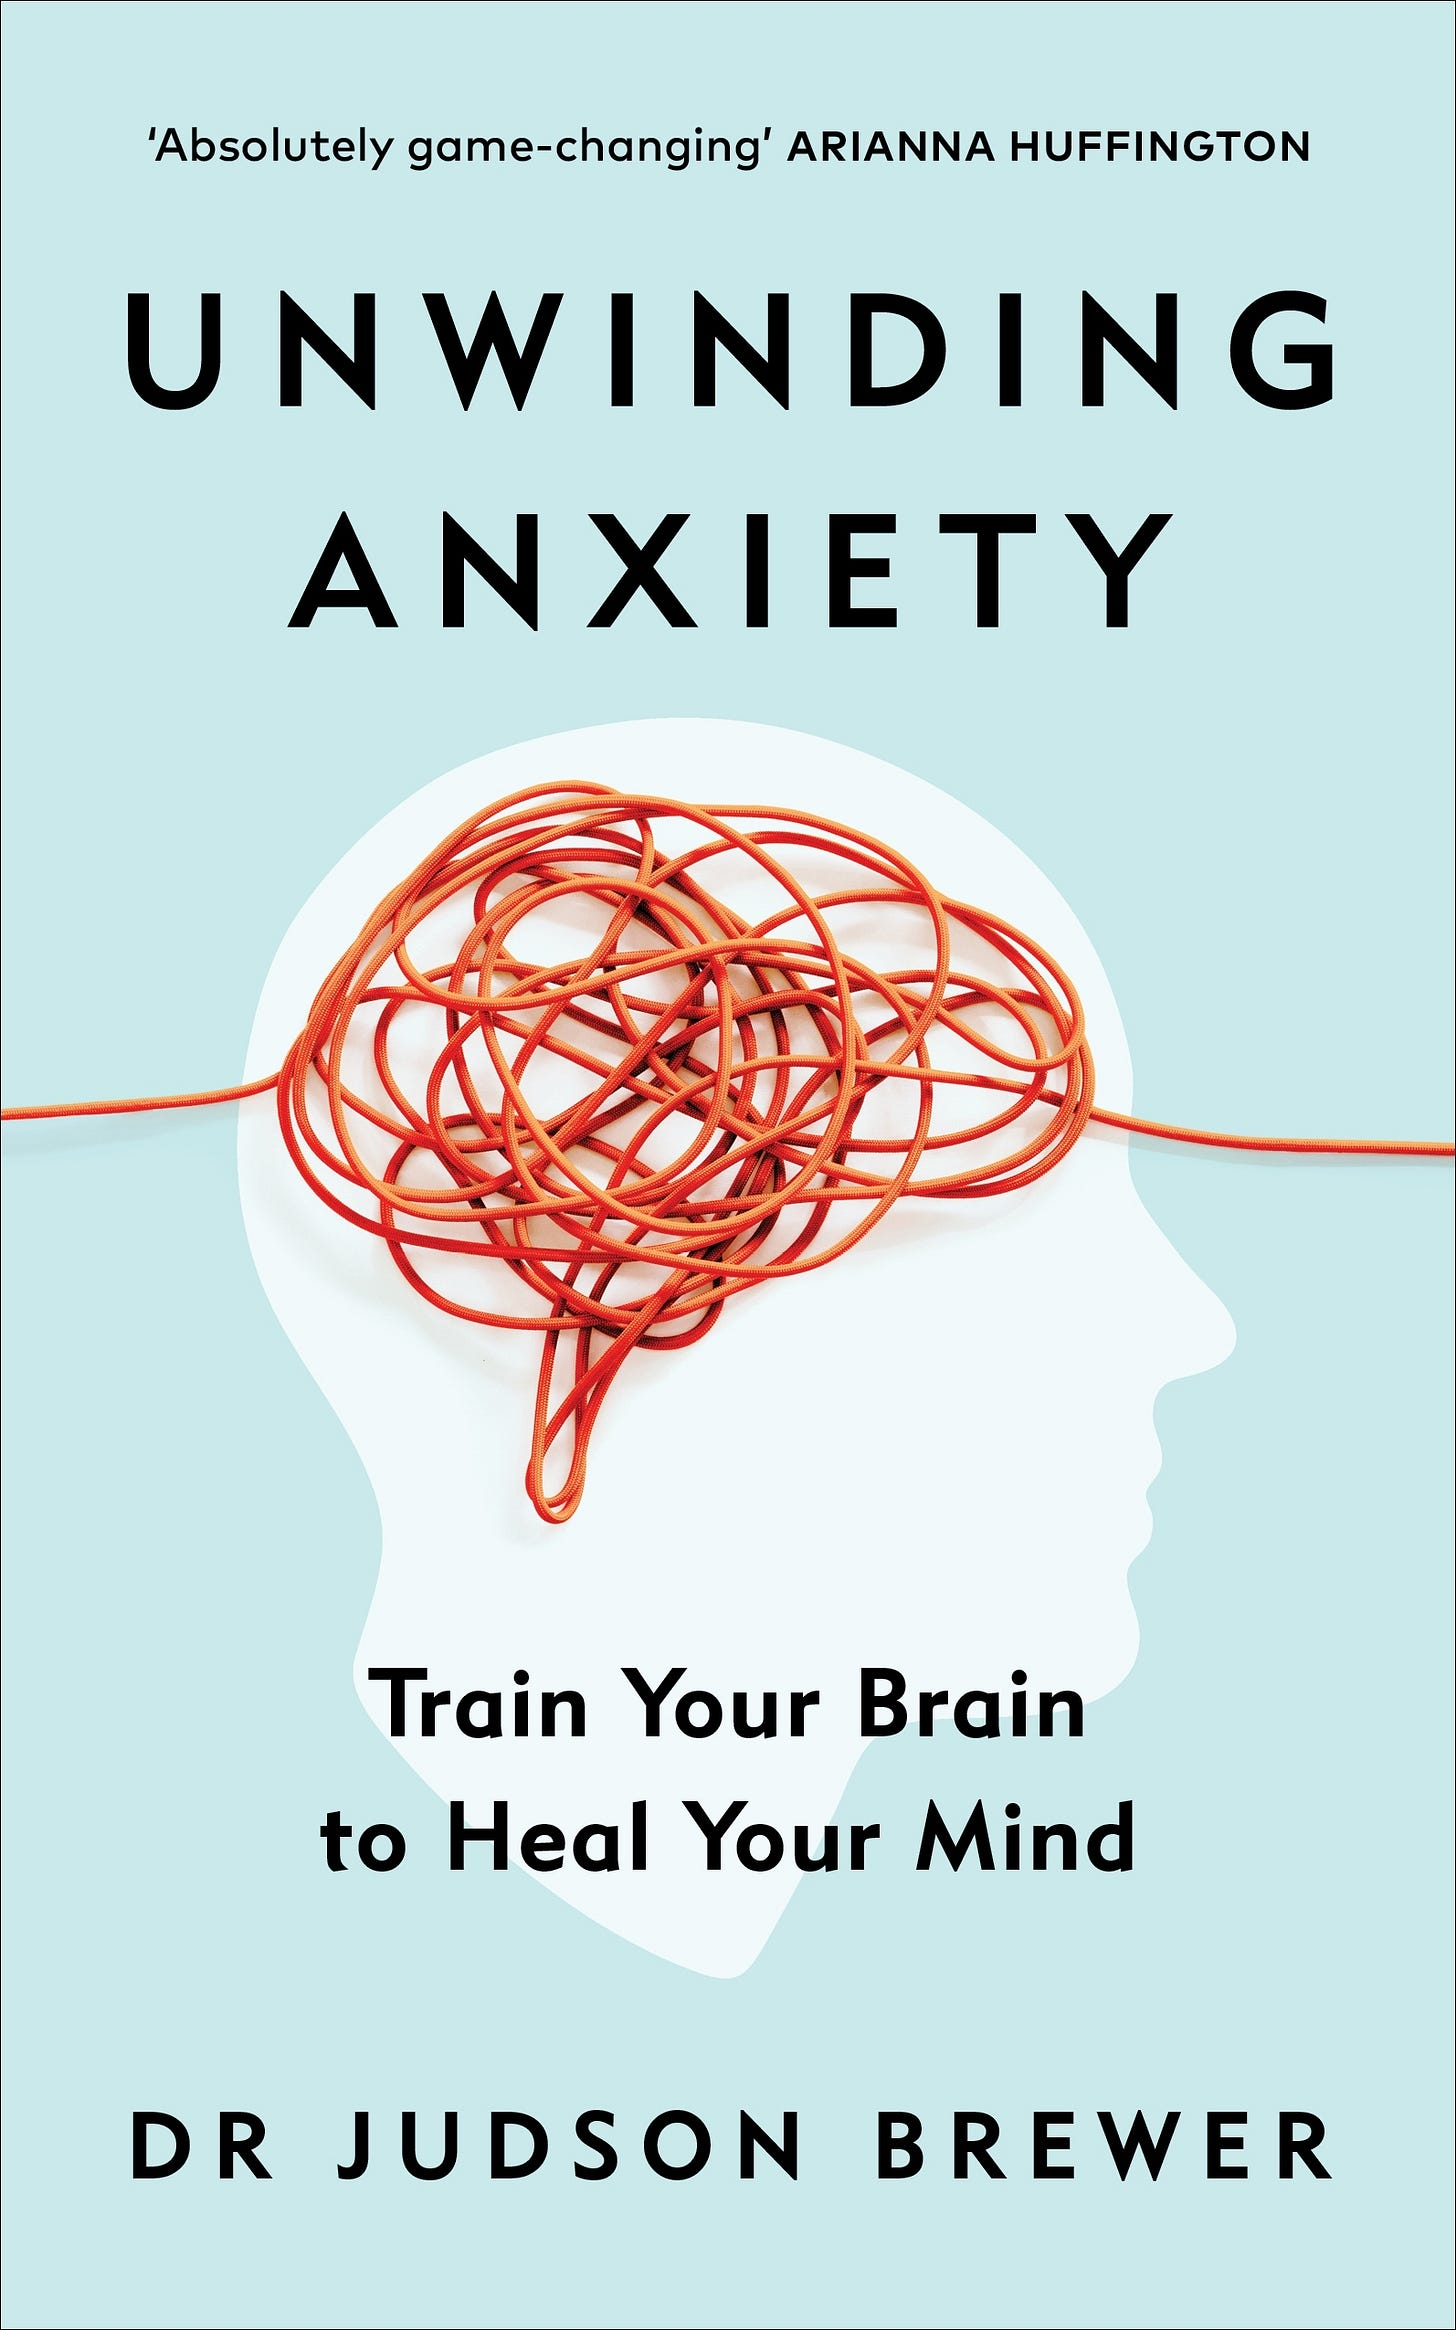 Book cover of Unwinding Anxiety by Dr. Judson Brewer